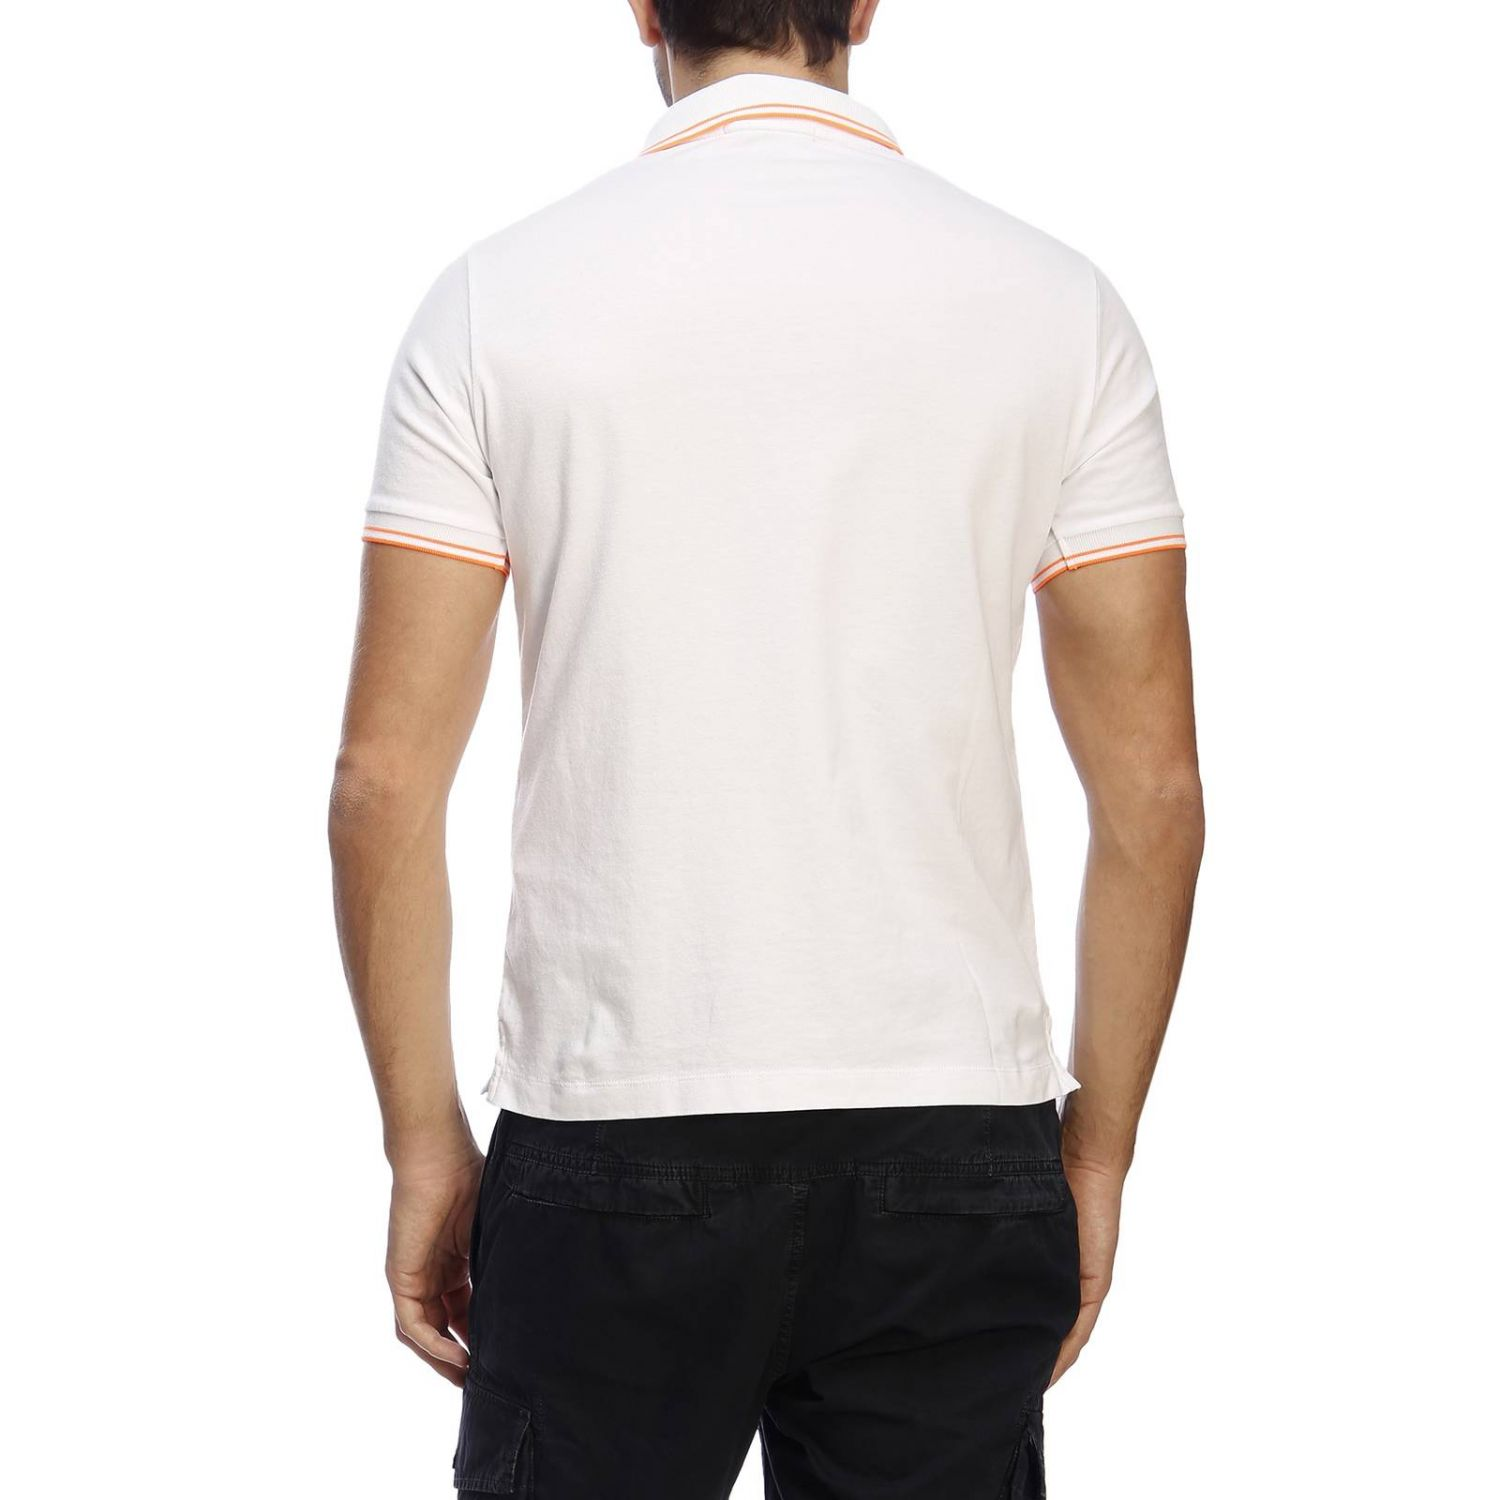 T-shirt men Stone Island white 3